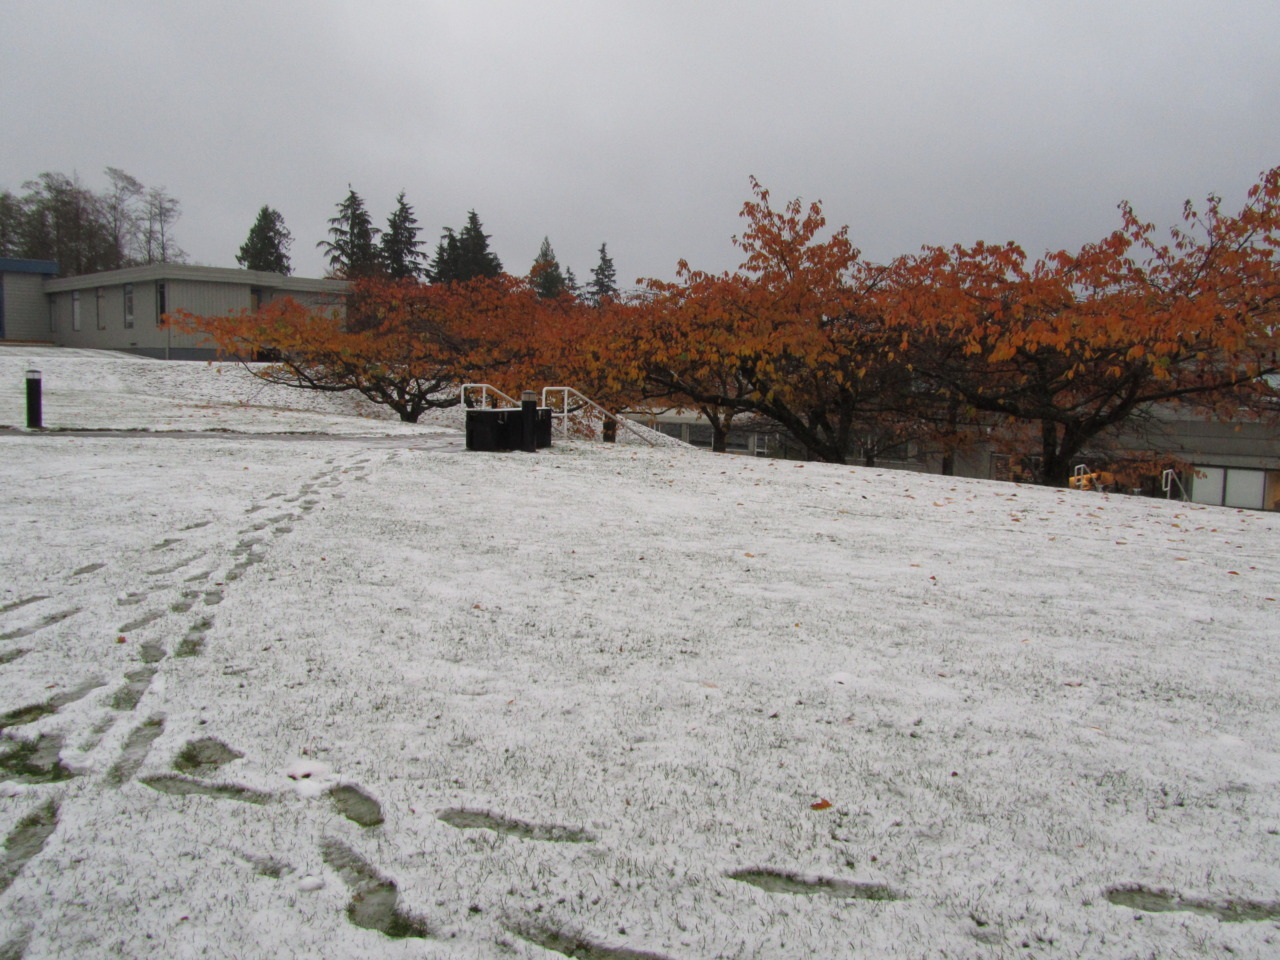 Up at SFU burnaby today we had snow..